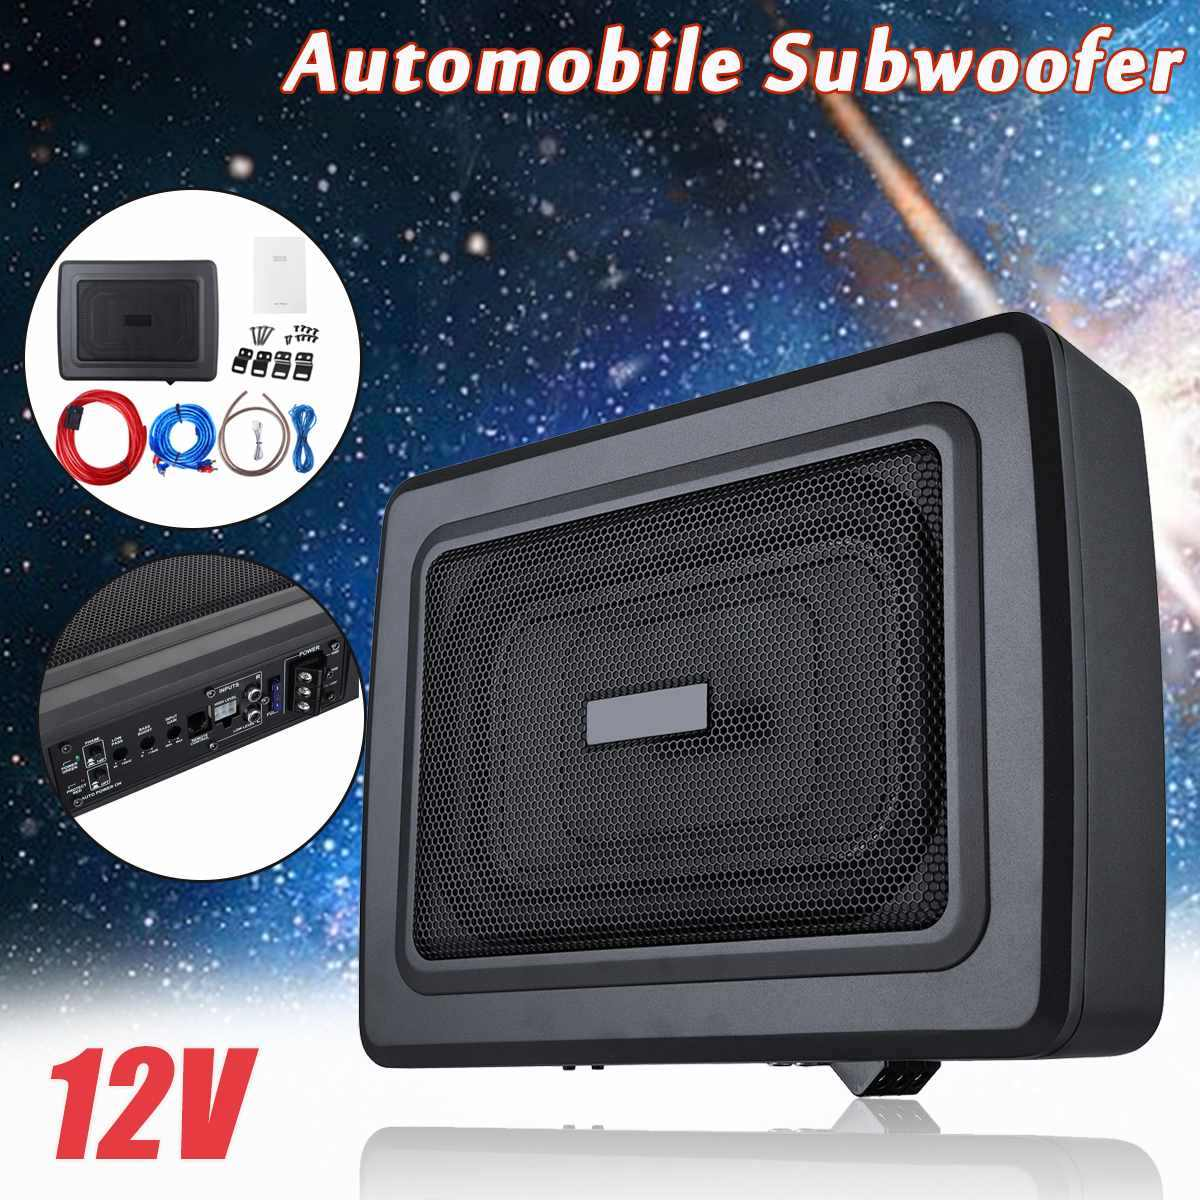 12V 600W Ultrathin Car Seat Subwoofer HIFI Speaker Auto Super Bass Automobile Audio Music Stereo Speakers Loudspeaker Amplifier